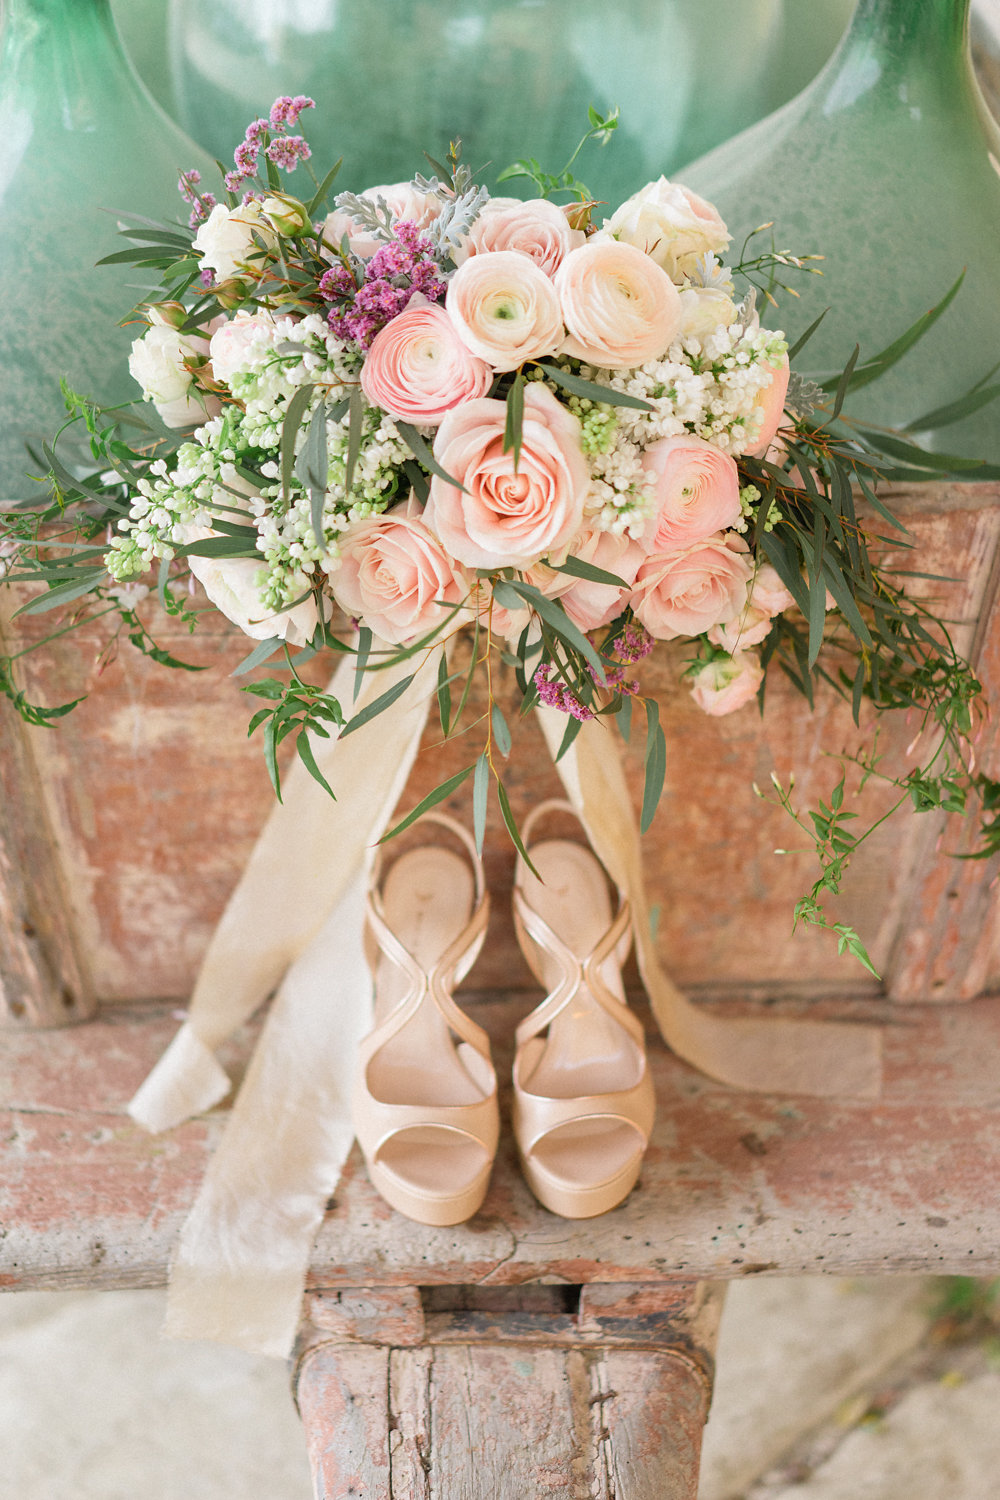 Tuscany Italy Wedding Photographer Roberta Facchini 213